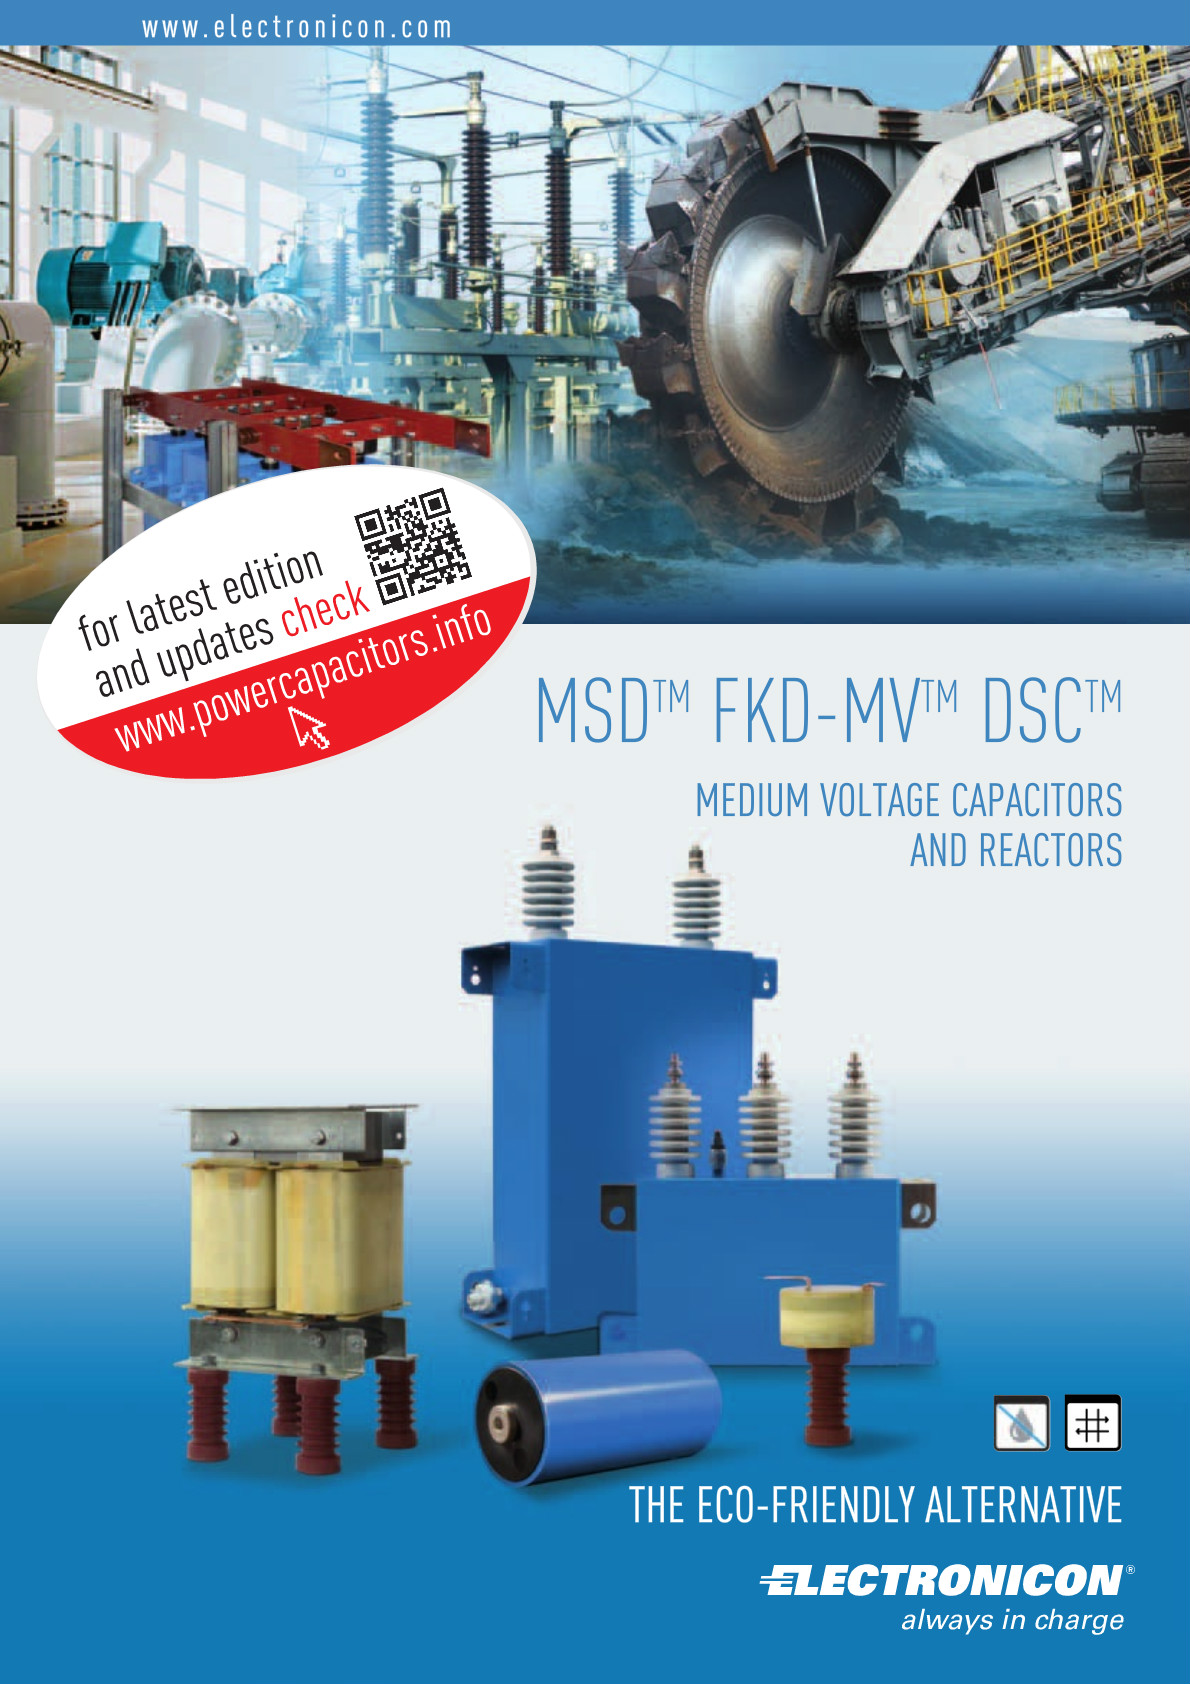 Ekg Online Catalogue Power Factor Correction Capacitors Medium Voltage And Reactors For 312kv